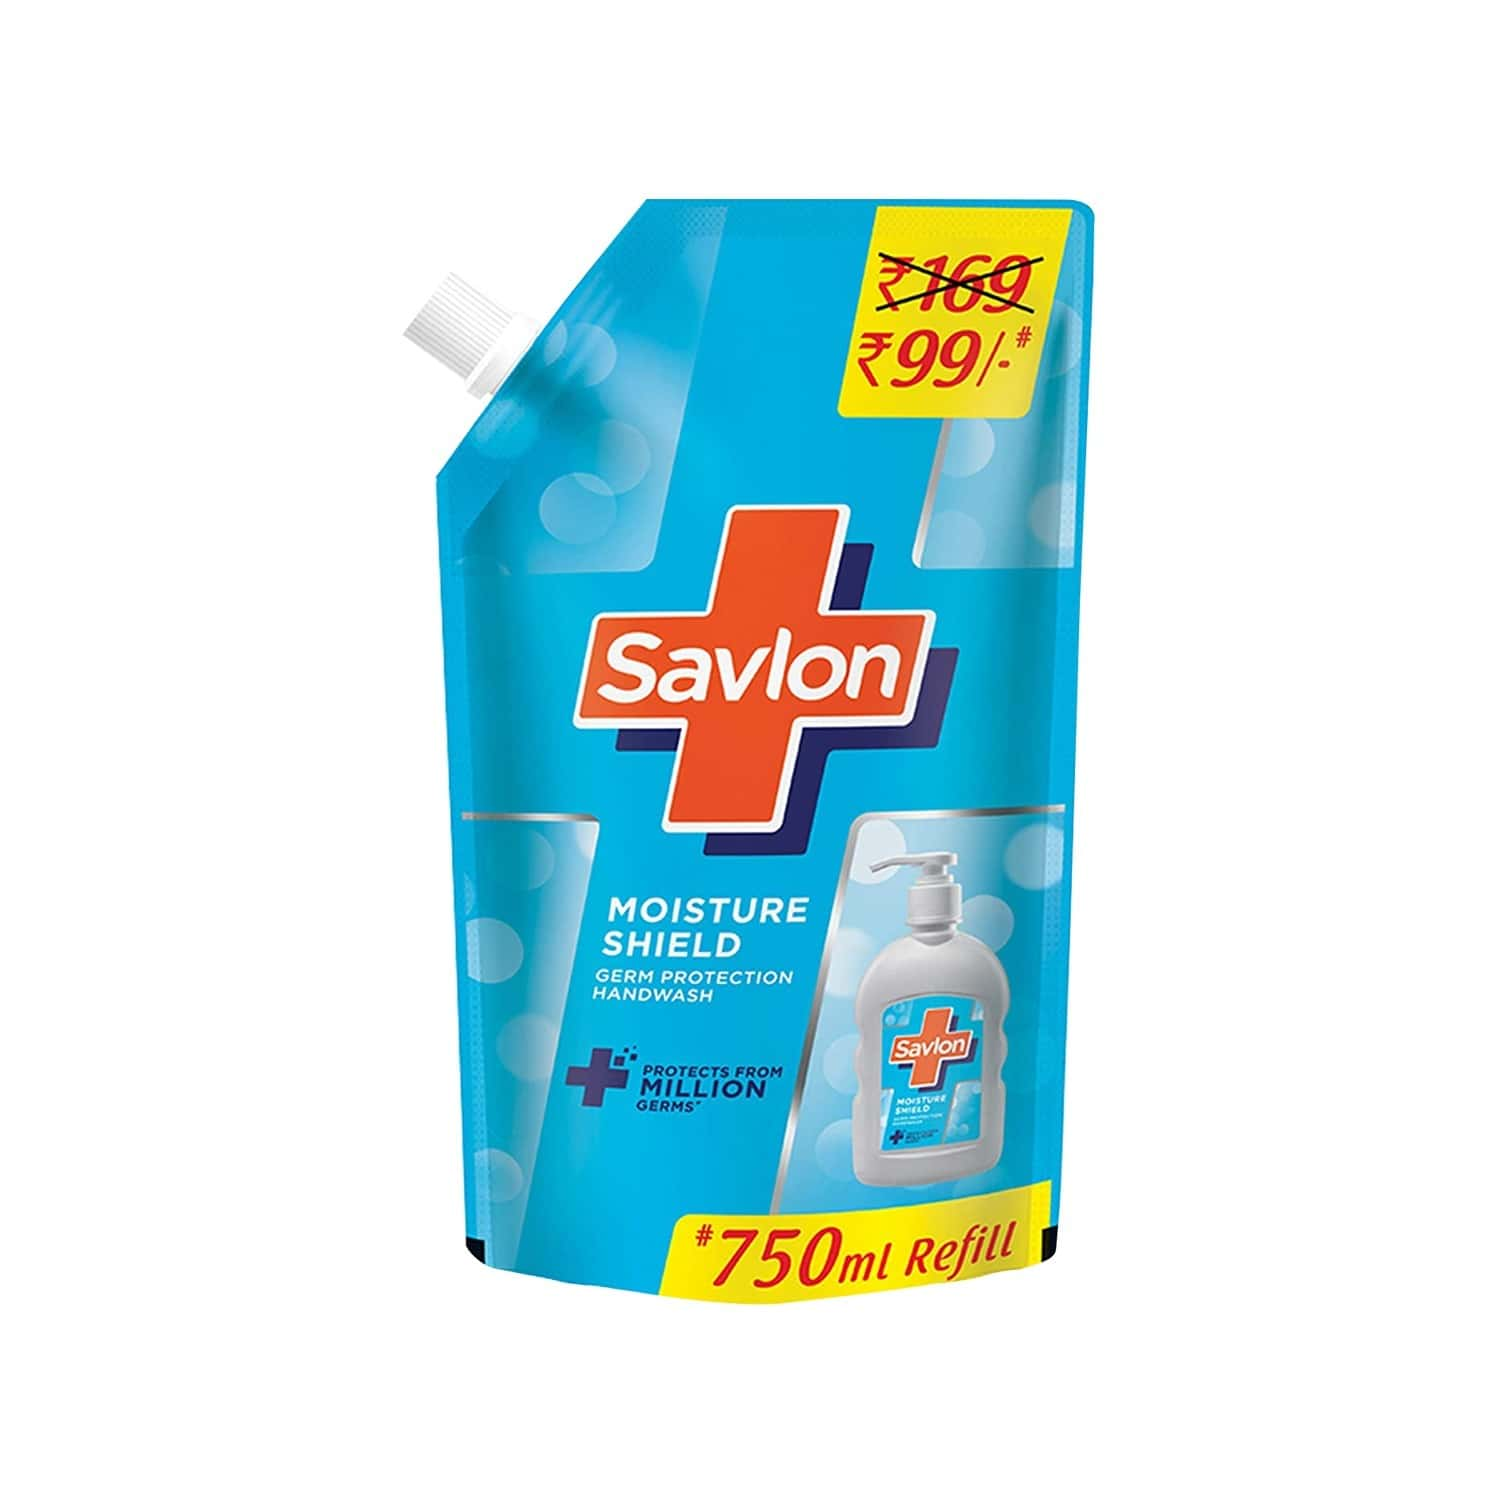 Savlon Moisture Shield Handwash Refill Of 750 Ml